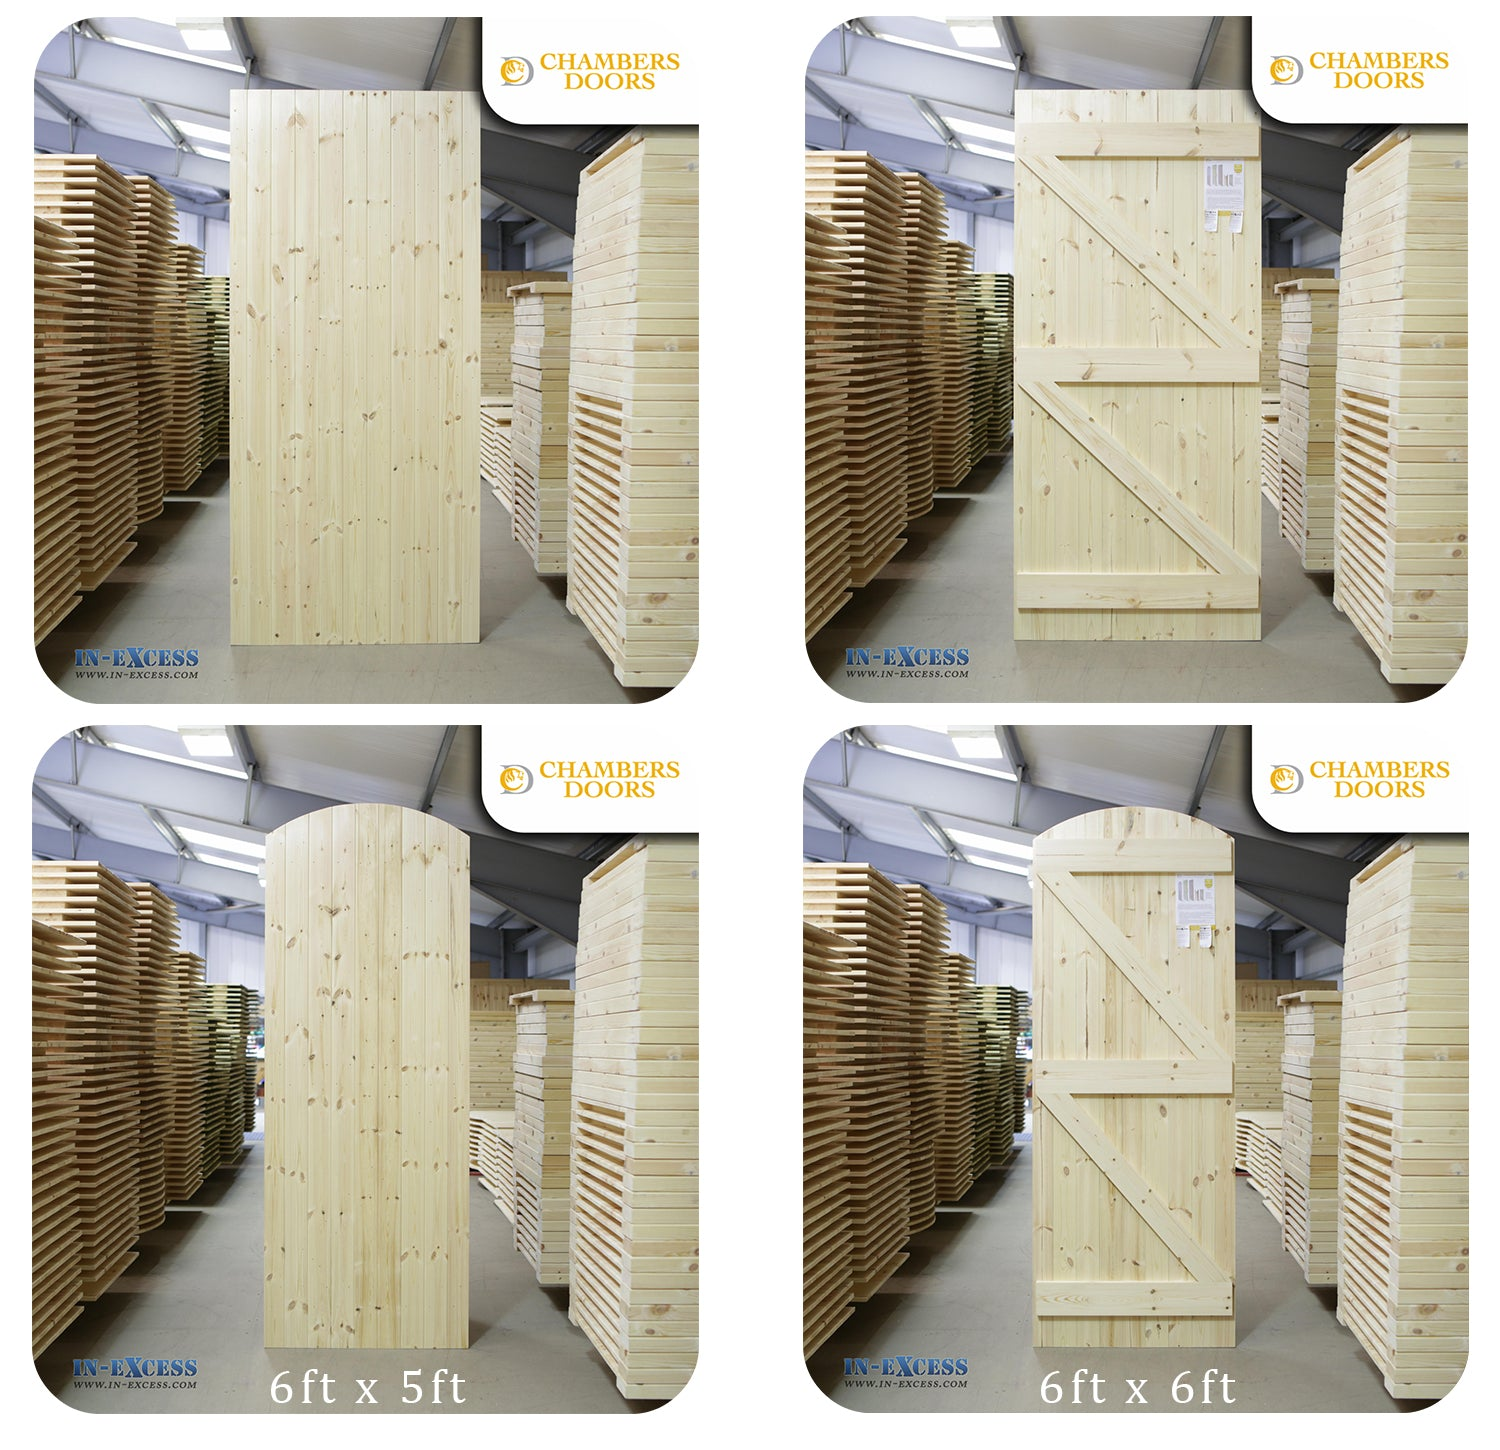 Chambers Doors and Gates example images